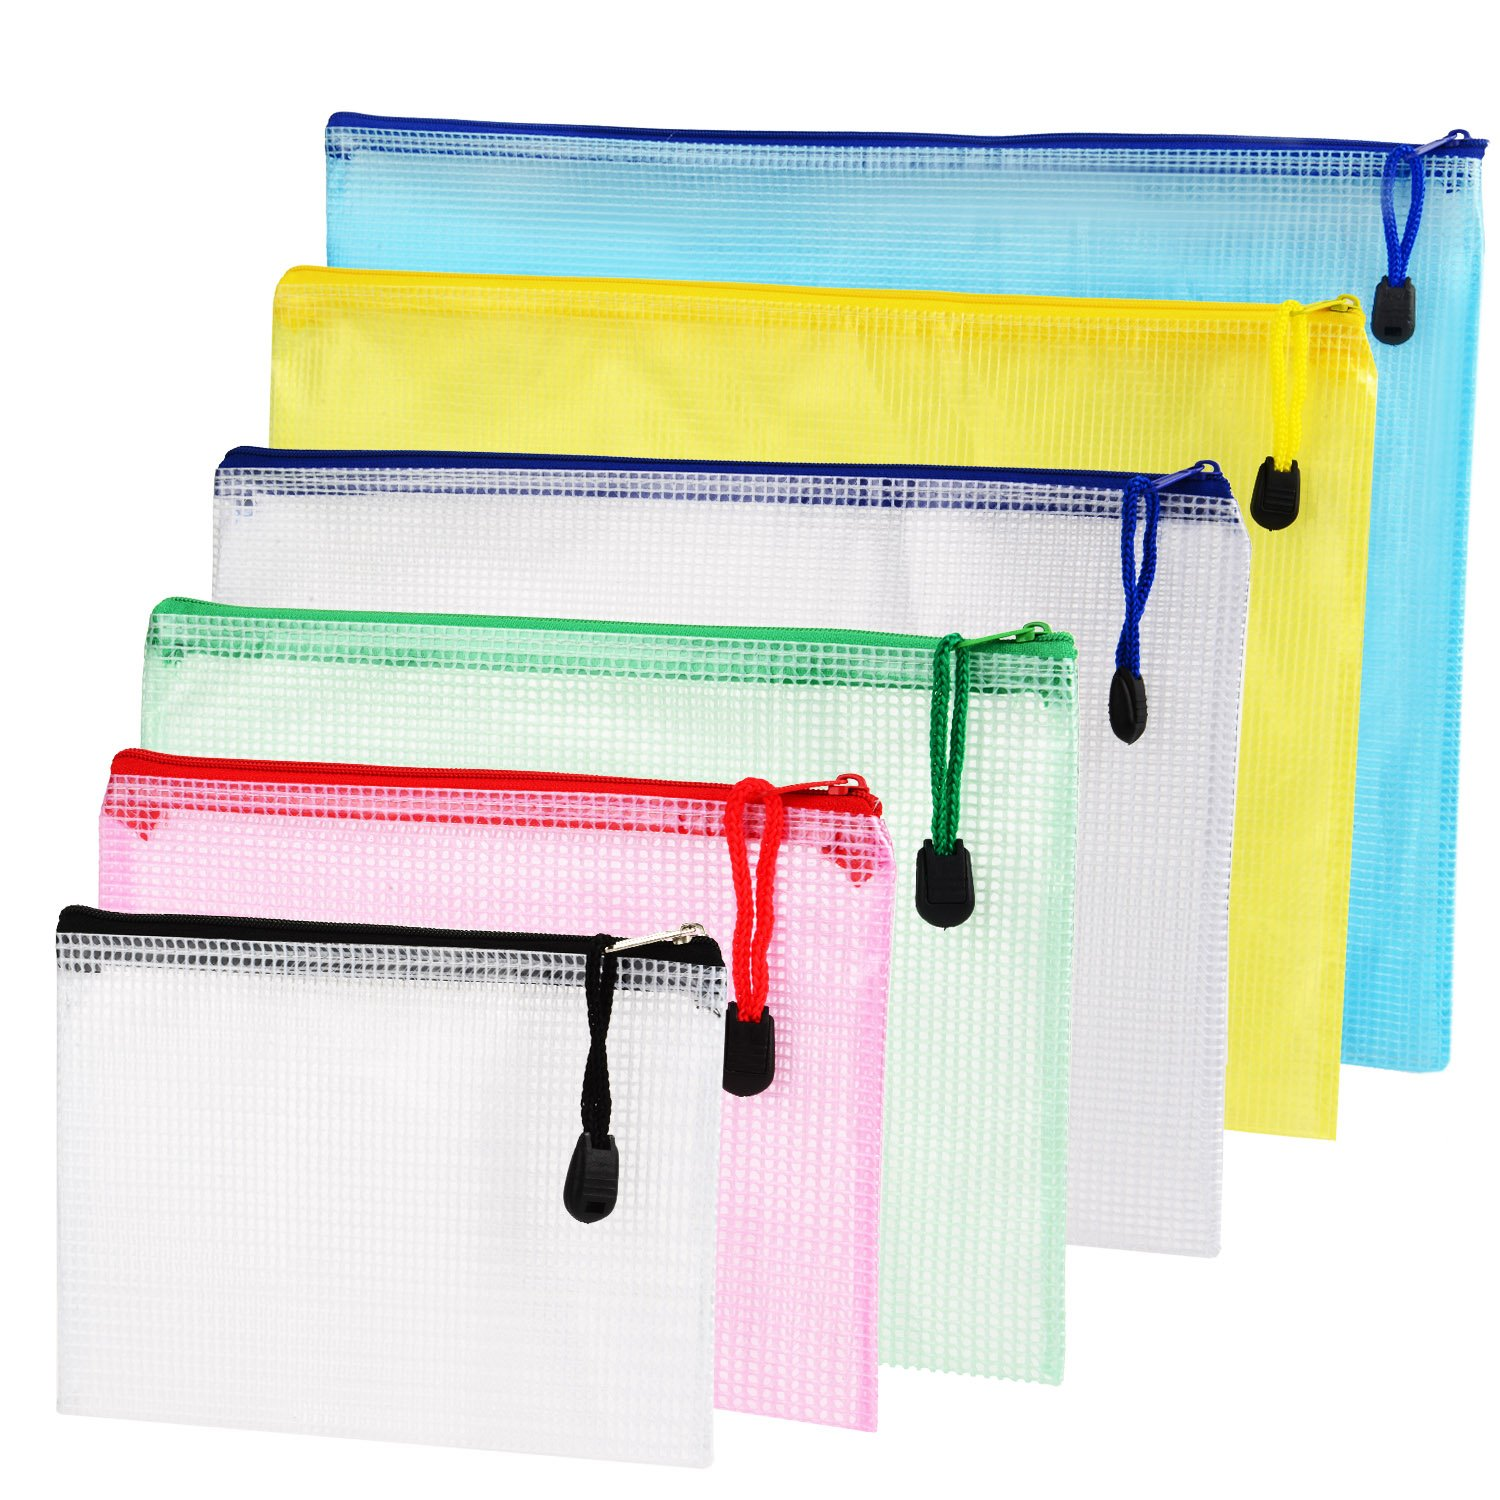 Outus 6 Pieces 6 Size Zipper File Bags Mesh Document Bag File Pouch Storage Zipper Bags for Cosmetics Offices Supplies Travel Accessories, 6 Colors